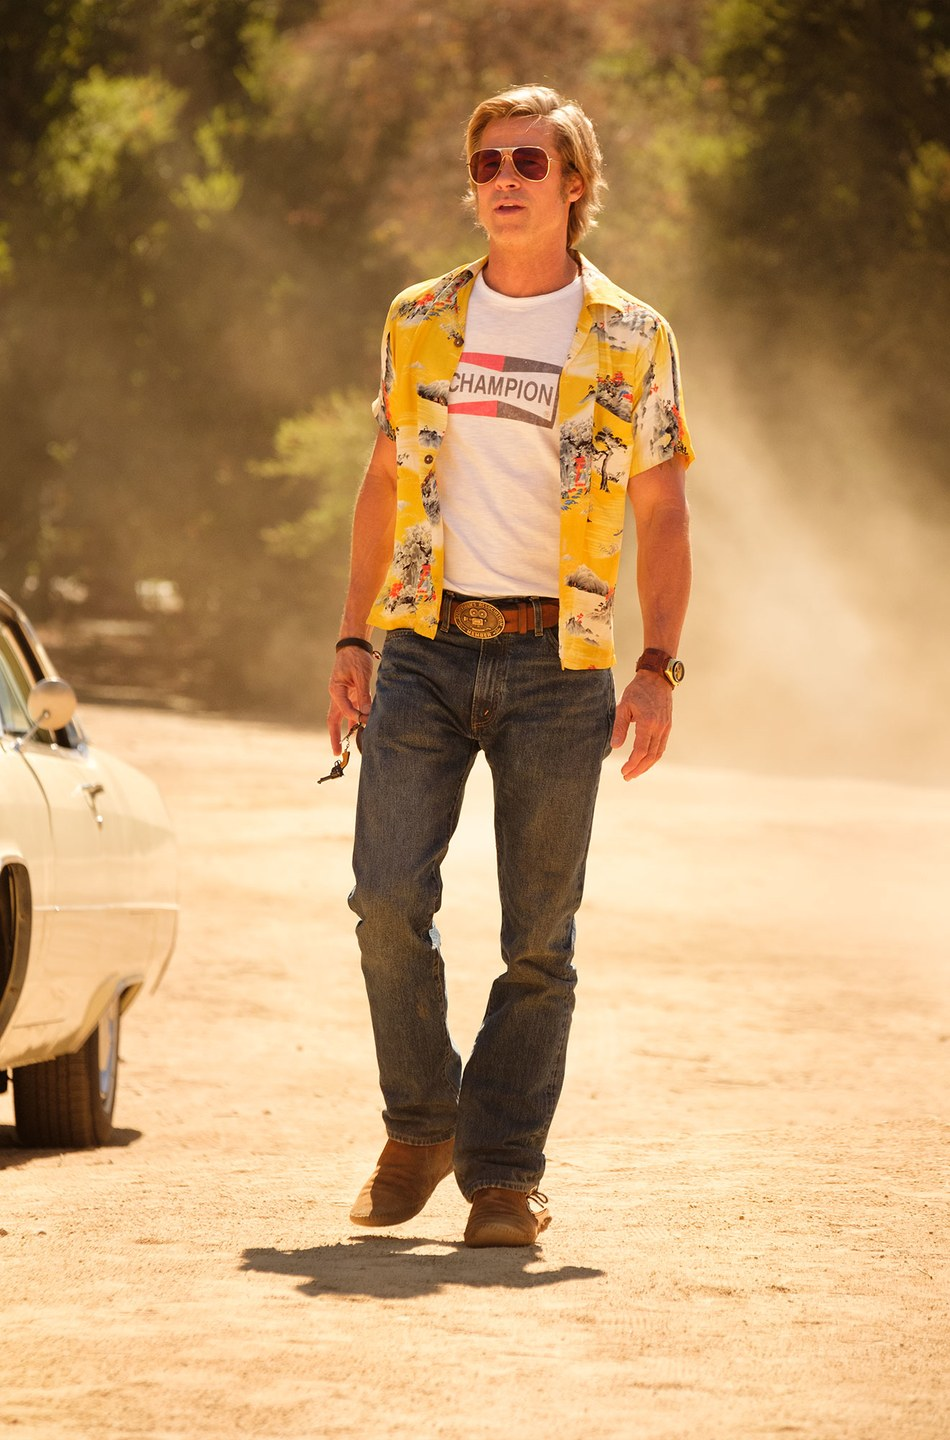 Once Upon a Time in Hollywood 8 - First Official Images from Tarantino's Charles Manson Movie ONCE UPON A TIME IN HOLLYWOOD Hit the Internet